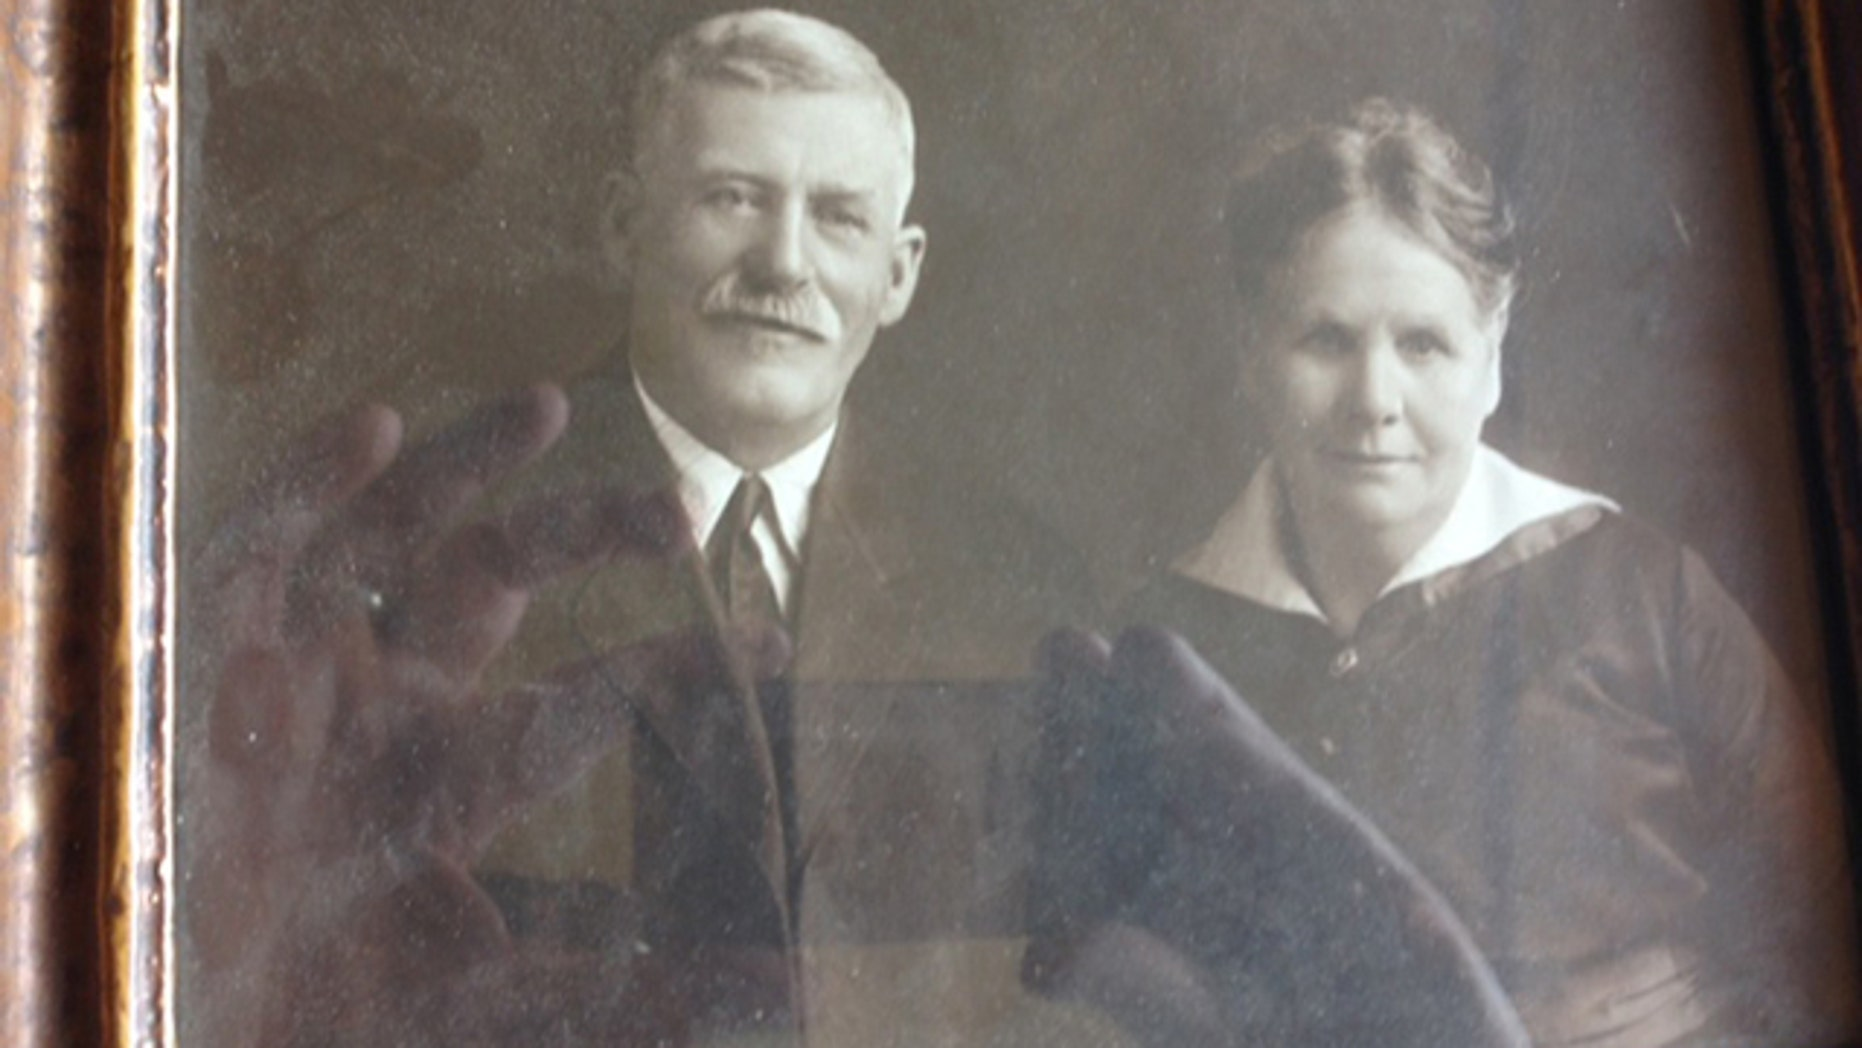 This image provided by the Department of Justice National Missing and Unidentified Persons System database shows an undated photo of Marvin Clark and an unidentified woman. Clark is one of the oldest missing persons case in the National Missing and Unidentified Persons System (NamUs) database. He was reported missing in November, 1926. NamUs is looking into the possibility that remains found in 1986 near US 30 may be those of Marvin Clark. (AP Photo/Department of Justice  National Missing and Unidentified Persons System)